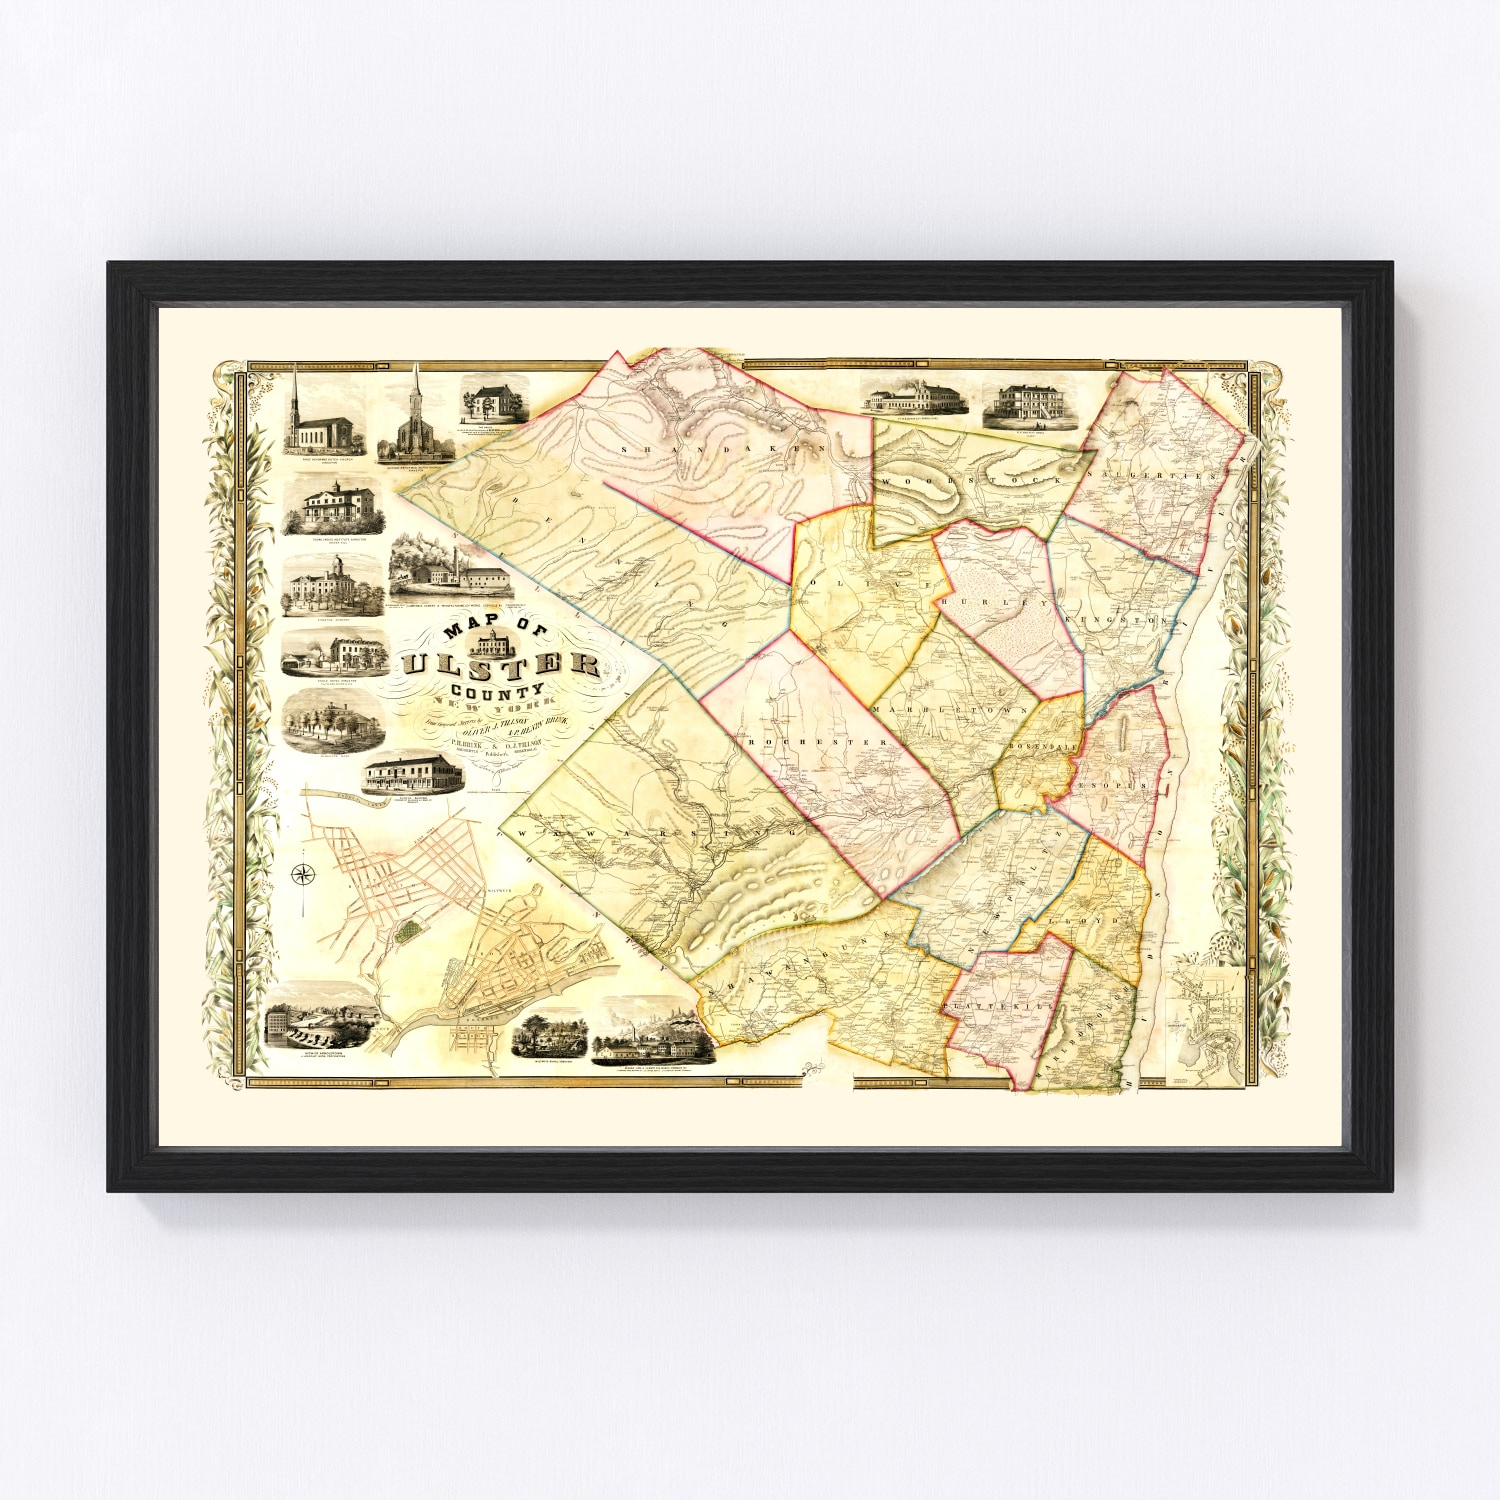 Vintage Map of Ulster County, New York 1853